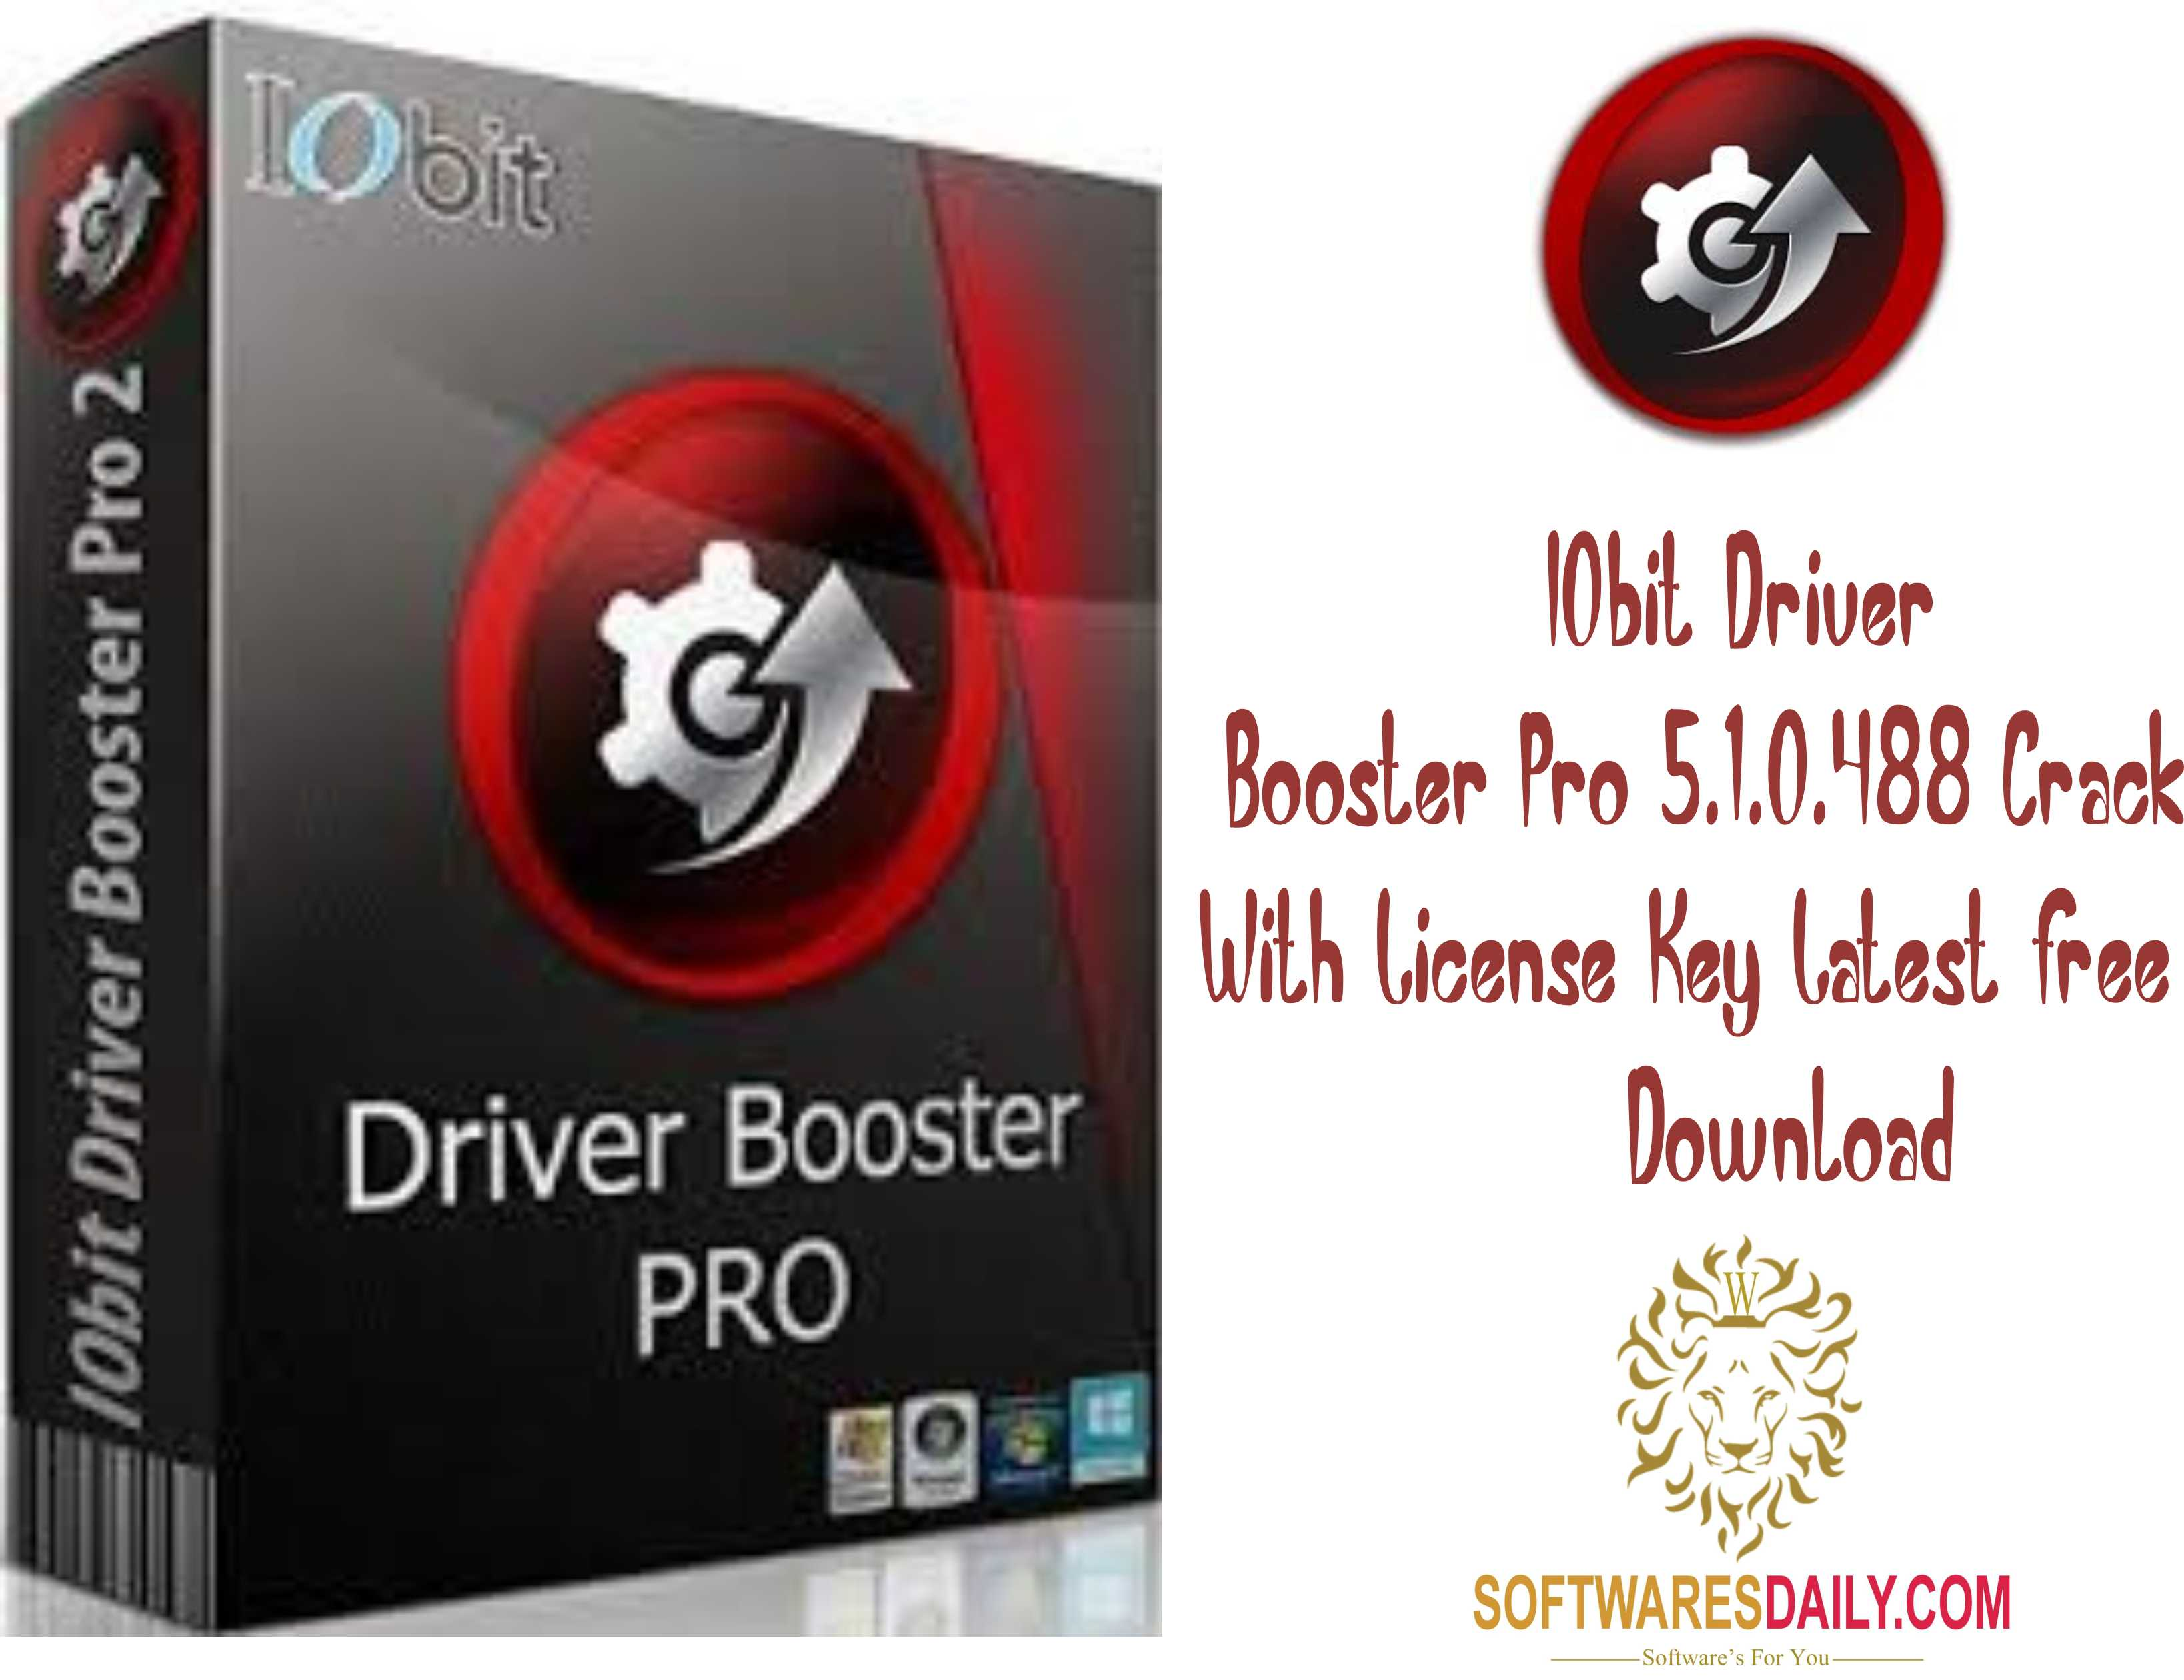 IObit Driver Booster Pro 5.1.0.488 Crack With License Key Latest Free Download